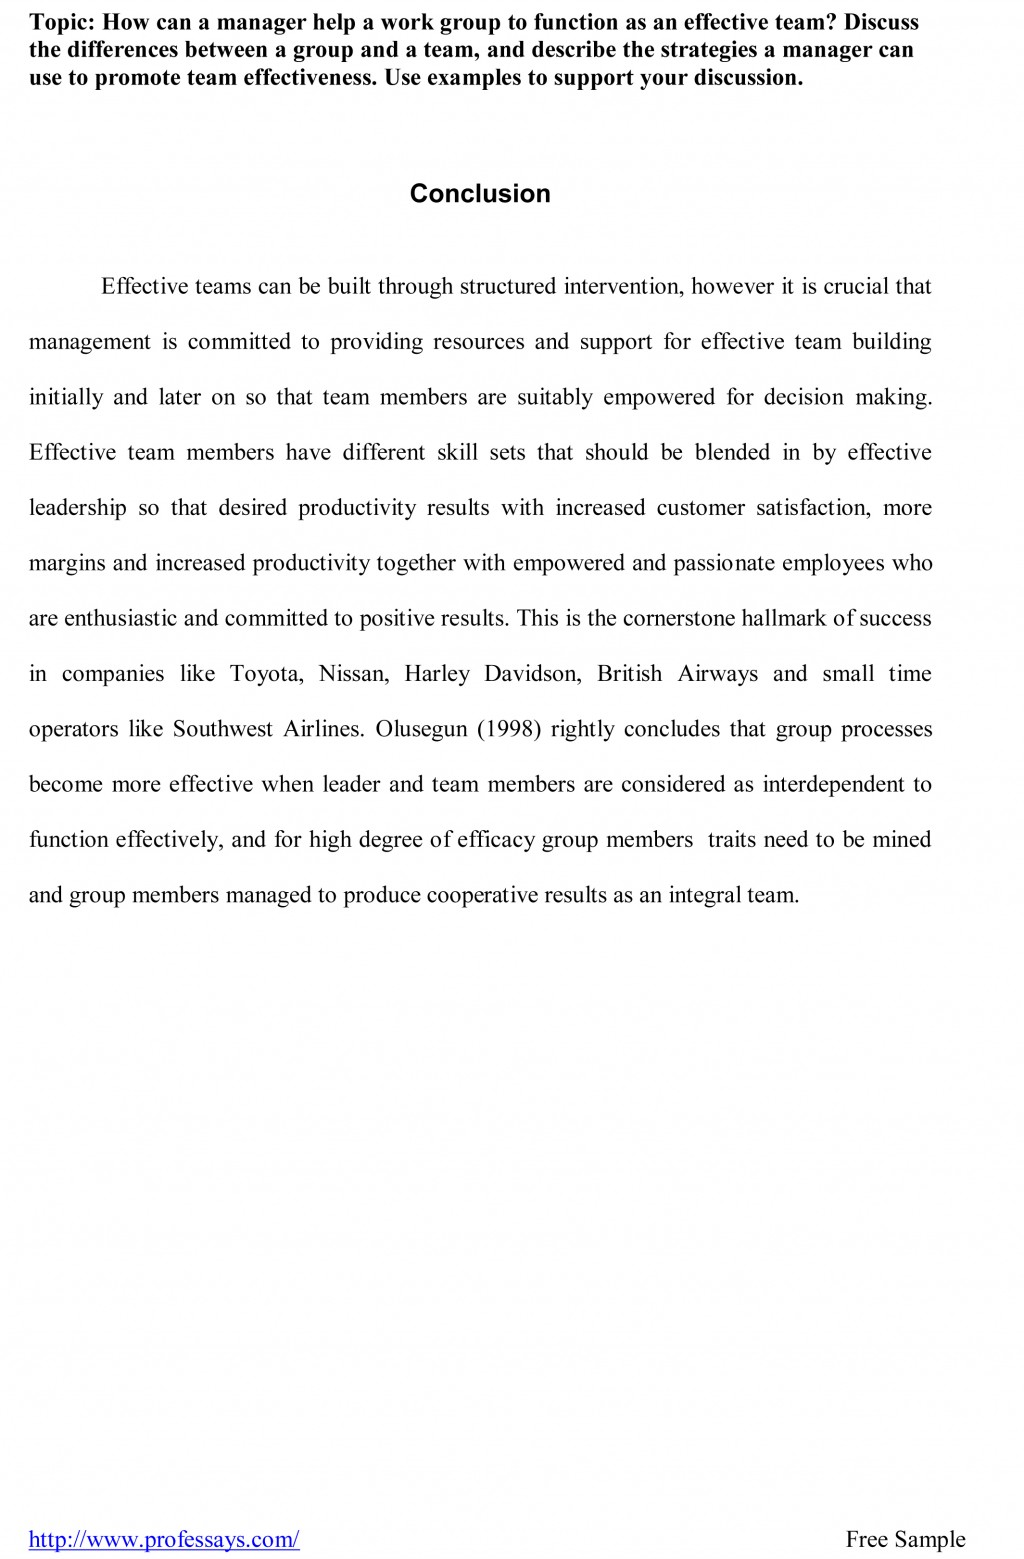 006 Help With Research Paper Conclusion Sample For Unique A Writing Outline Me Write Free Large